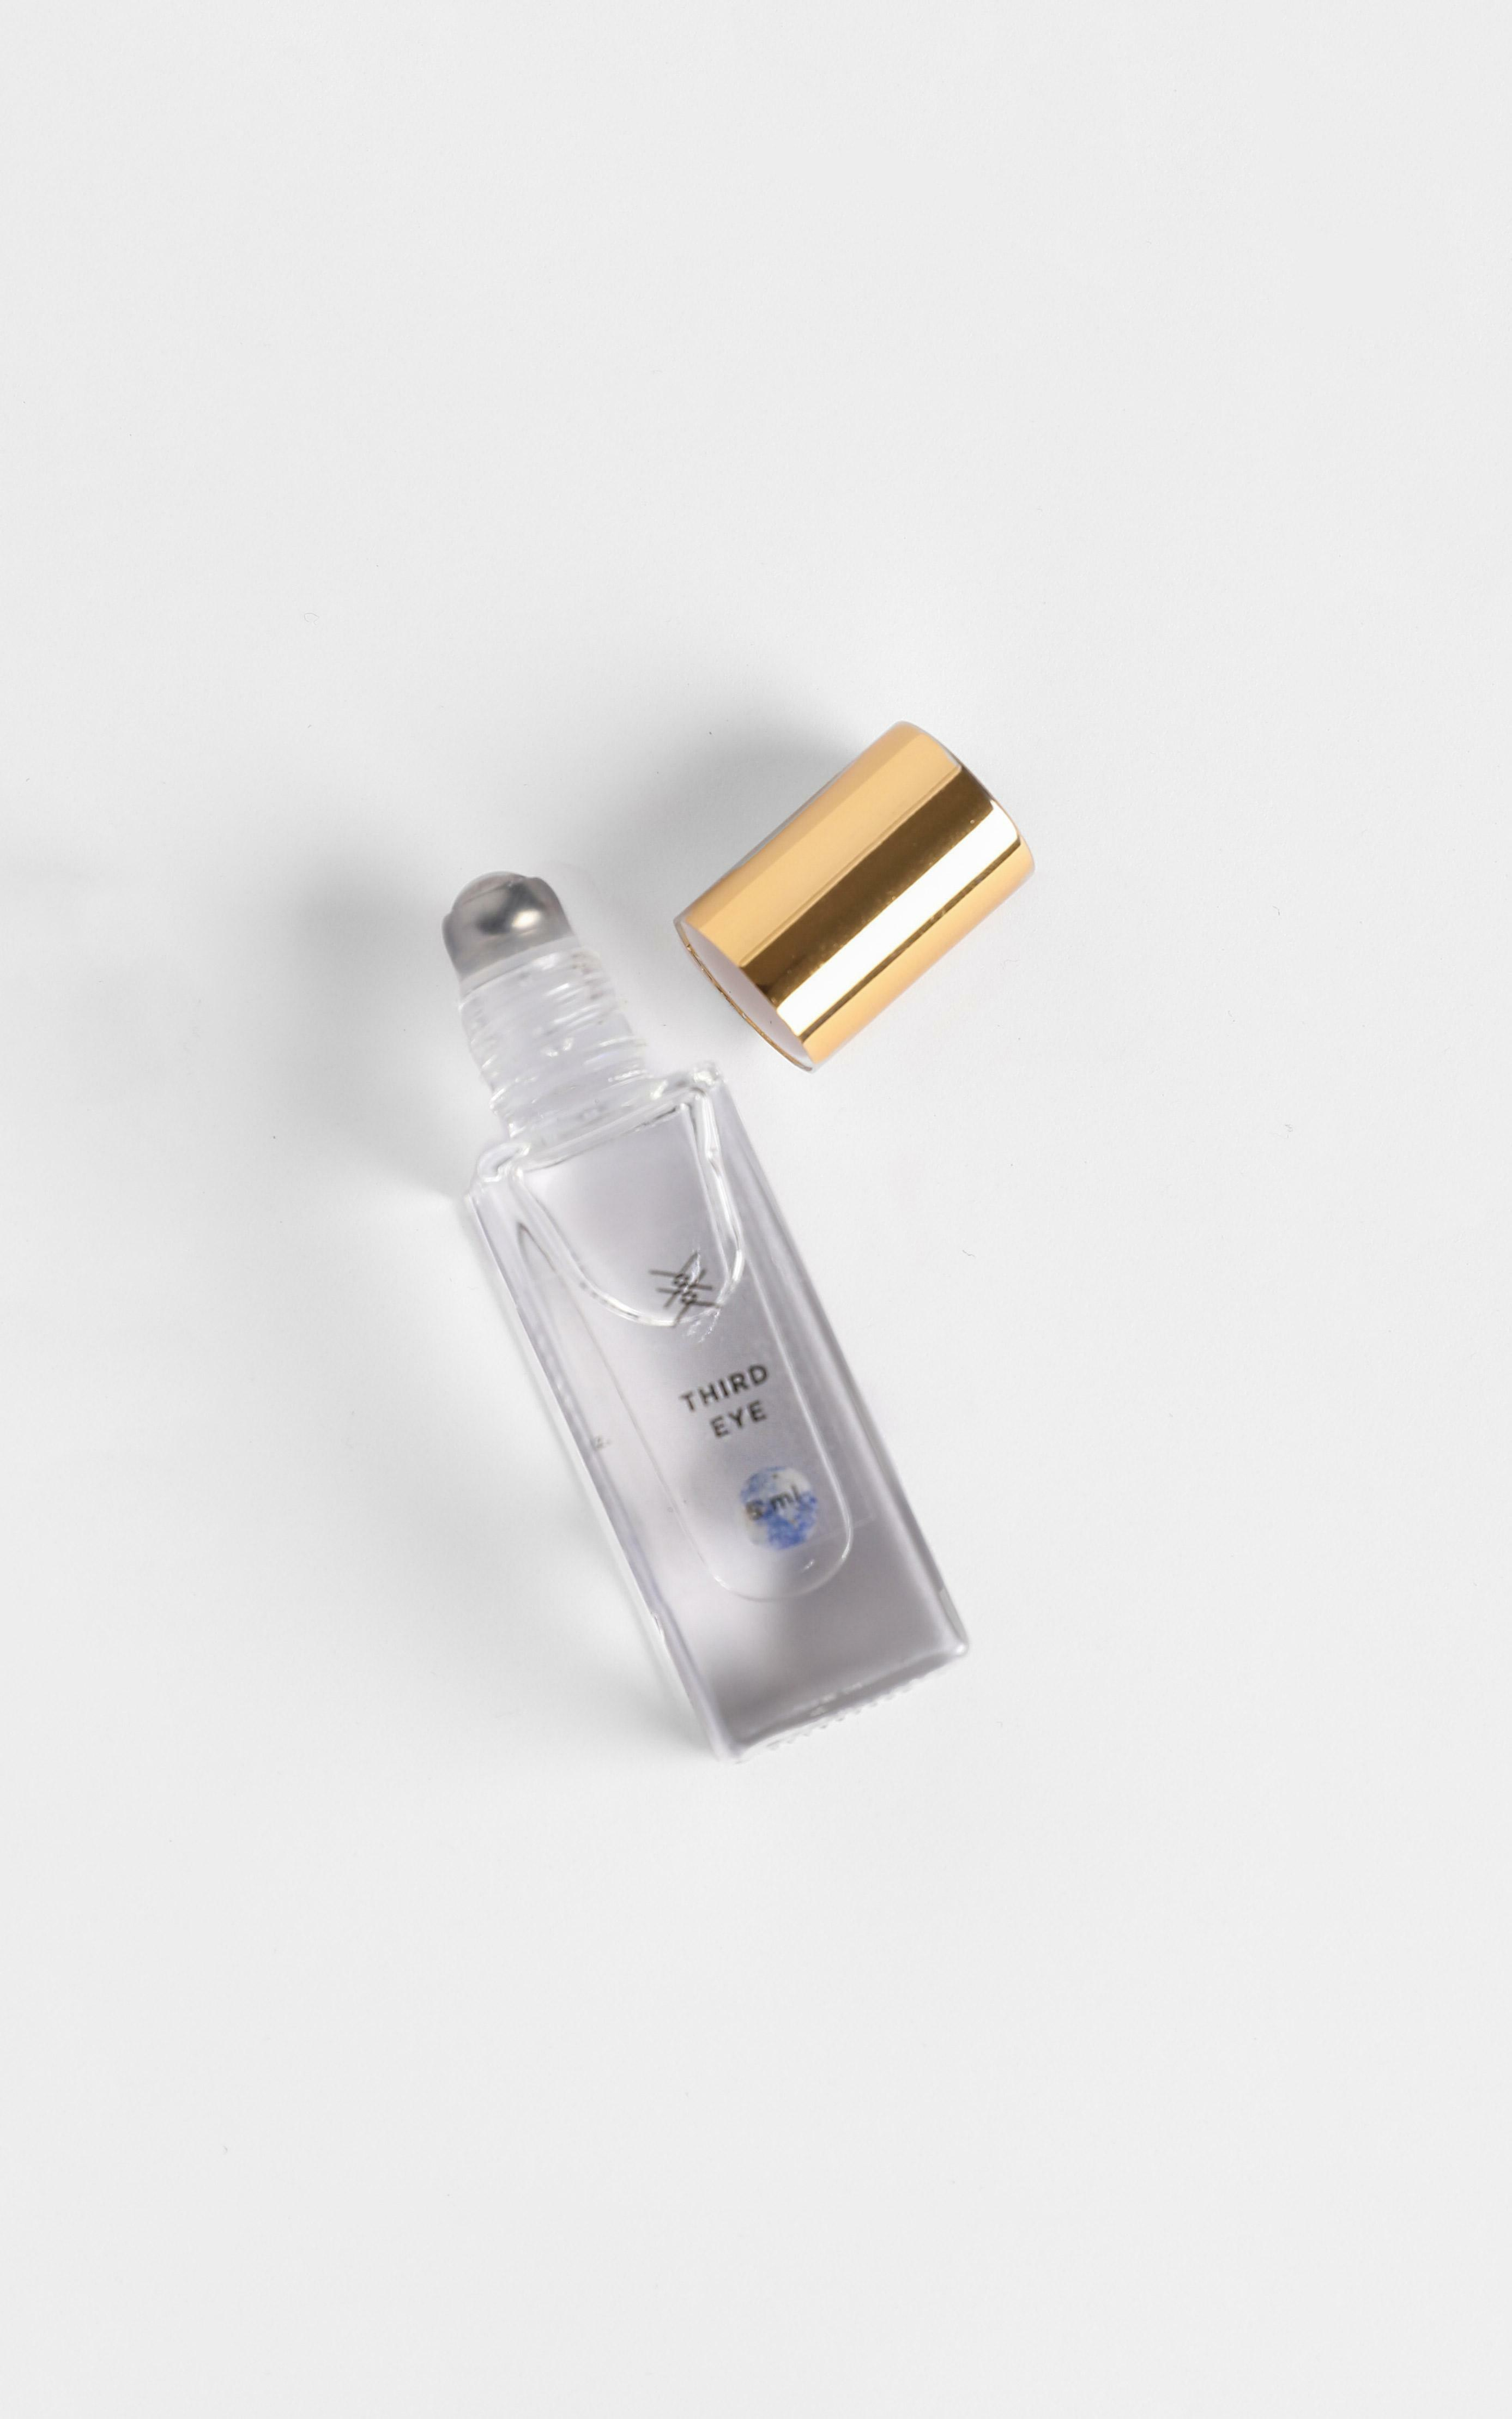 Baiser Beauty - Chakra Oil in Third Eye, CLR1, hi-res image number null